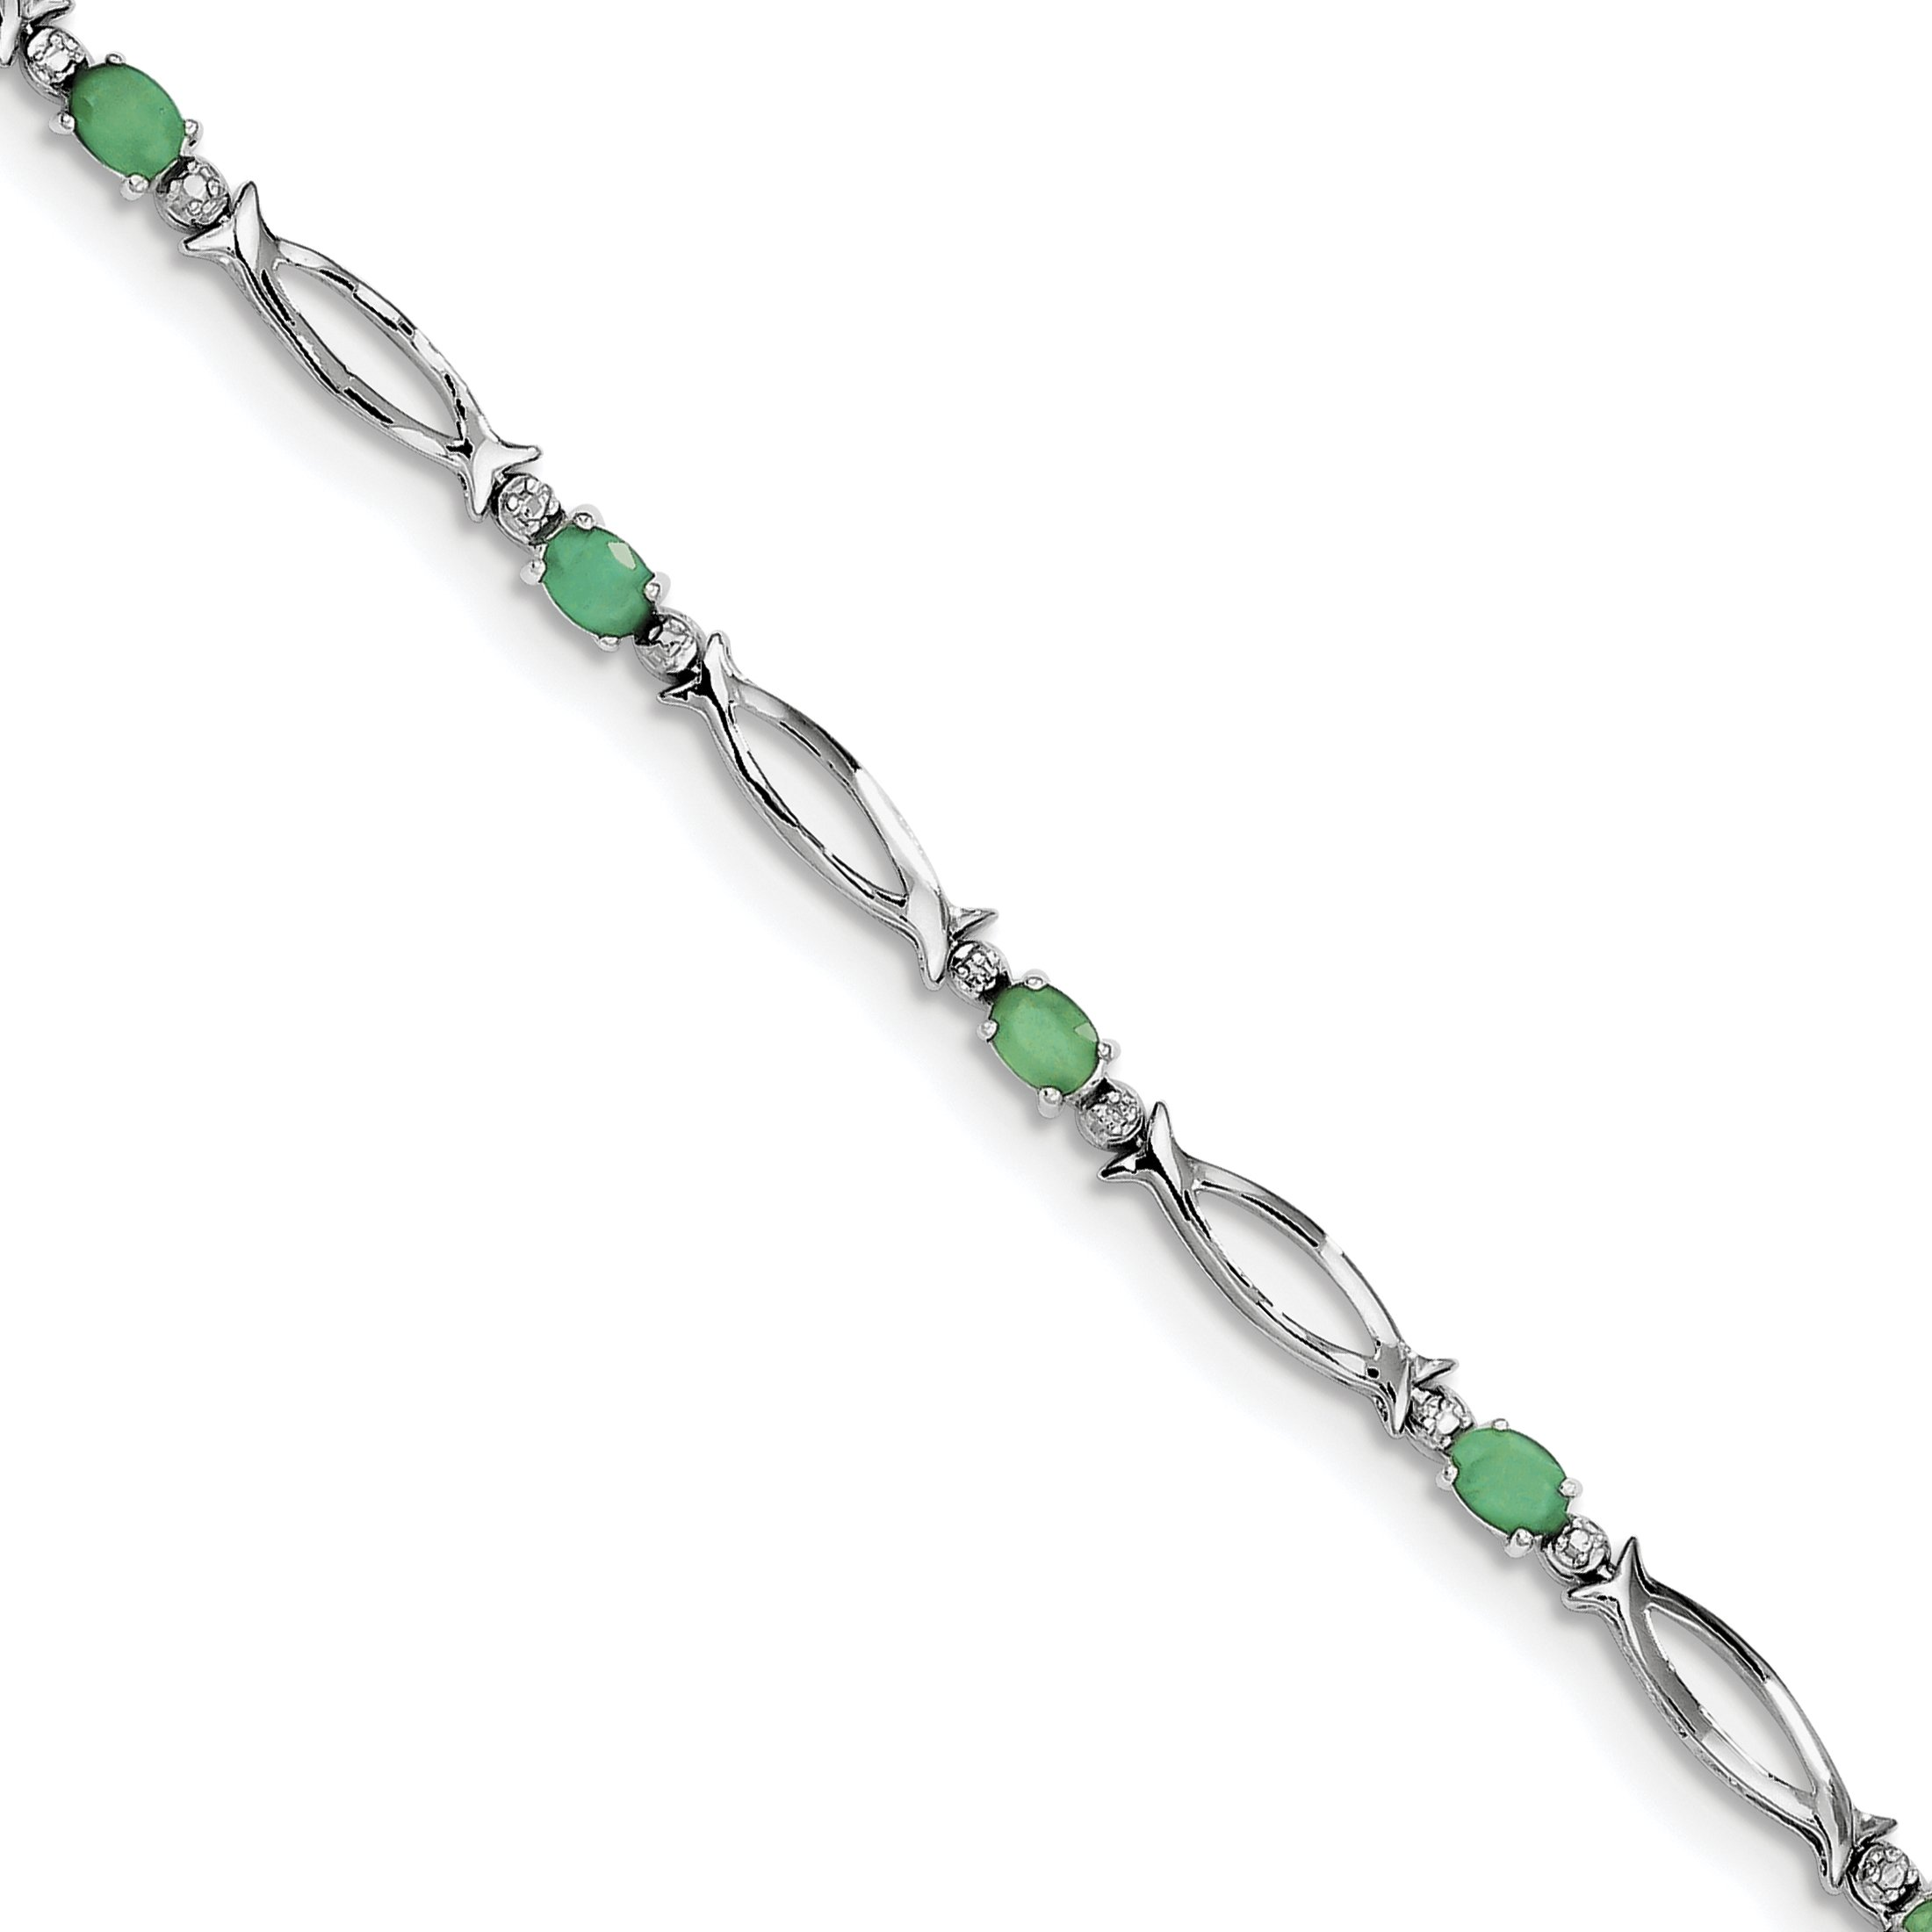 ICE CARATS 925 Sterling Silver Green Emerald Diamond Bracelet 7 Inch Gemstone Fine Jewelry Gift Set For Women Heart by ICE CARATS